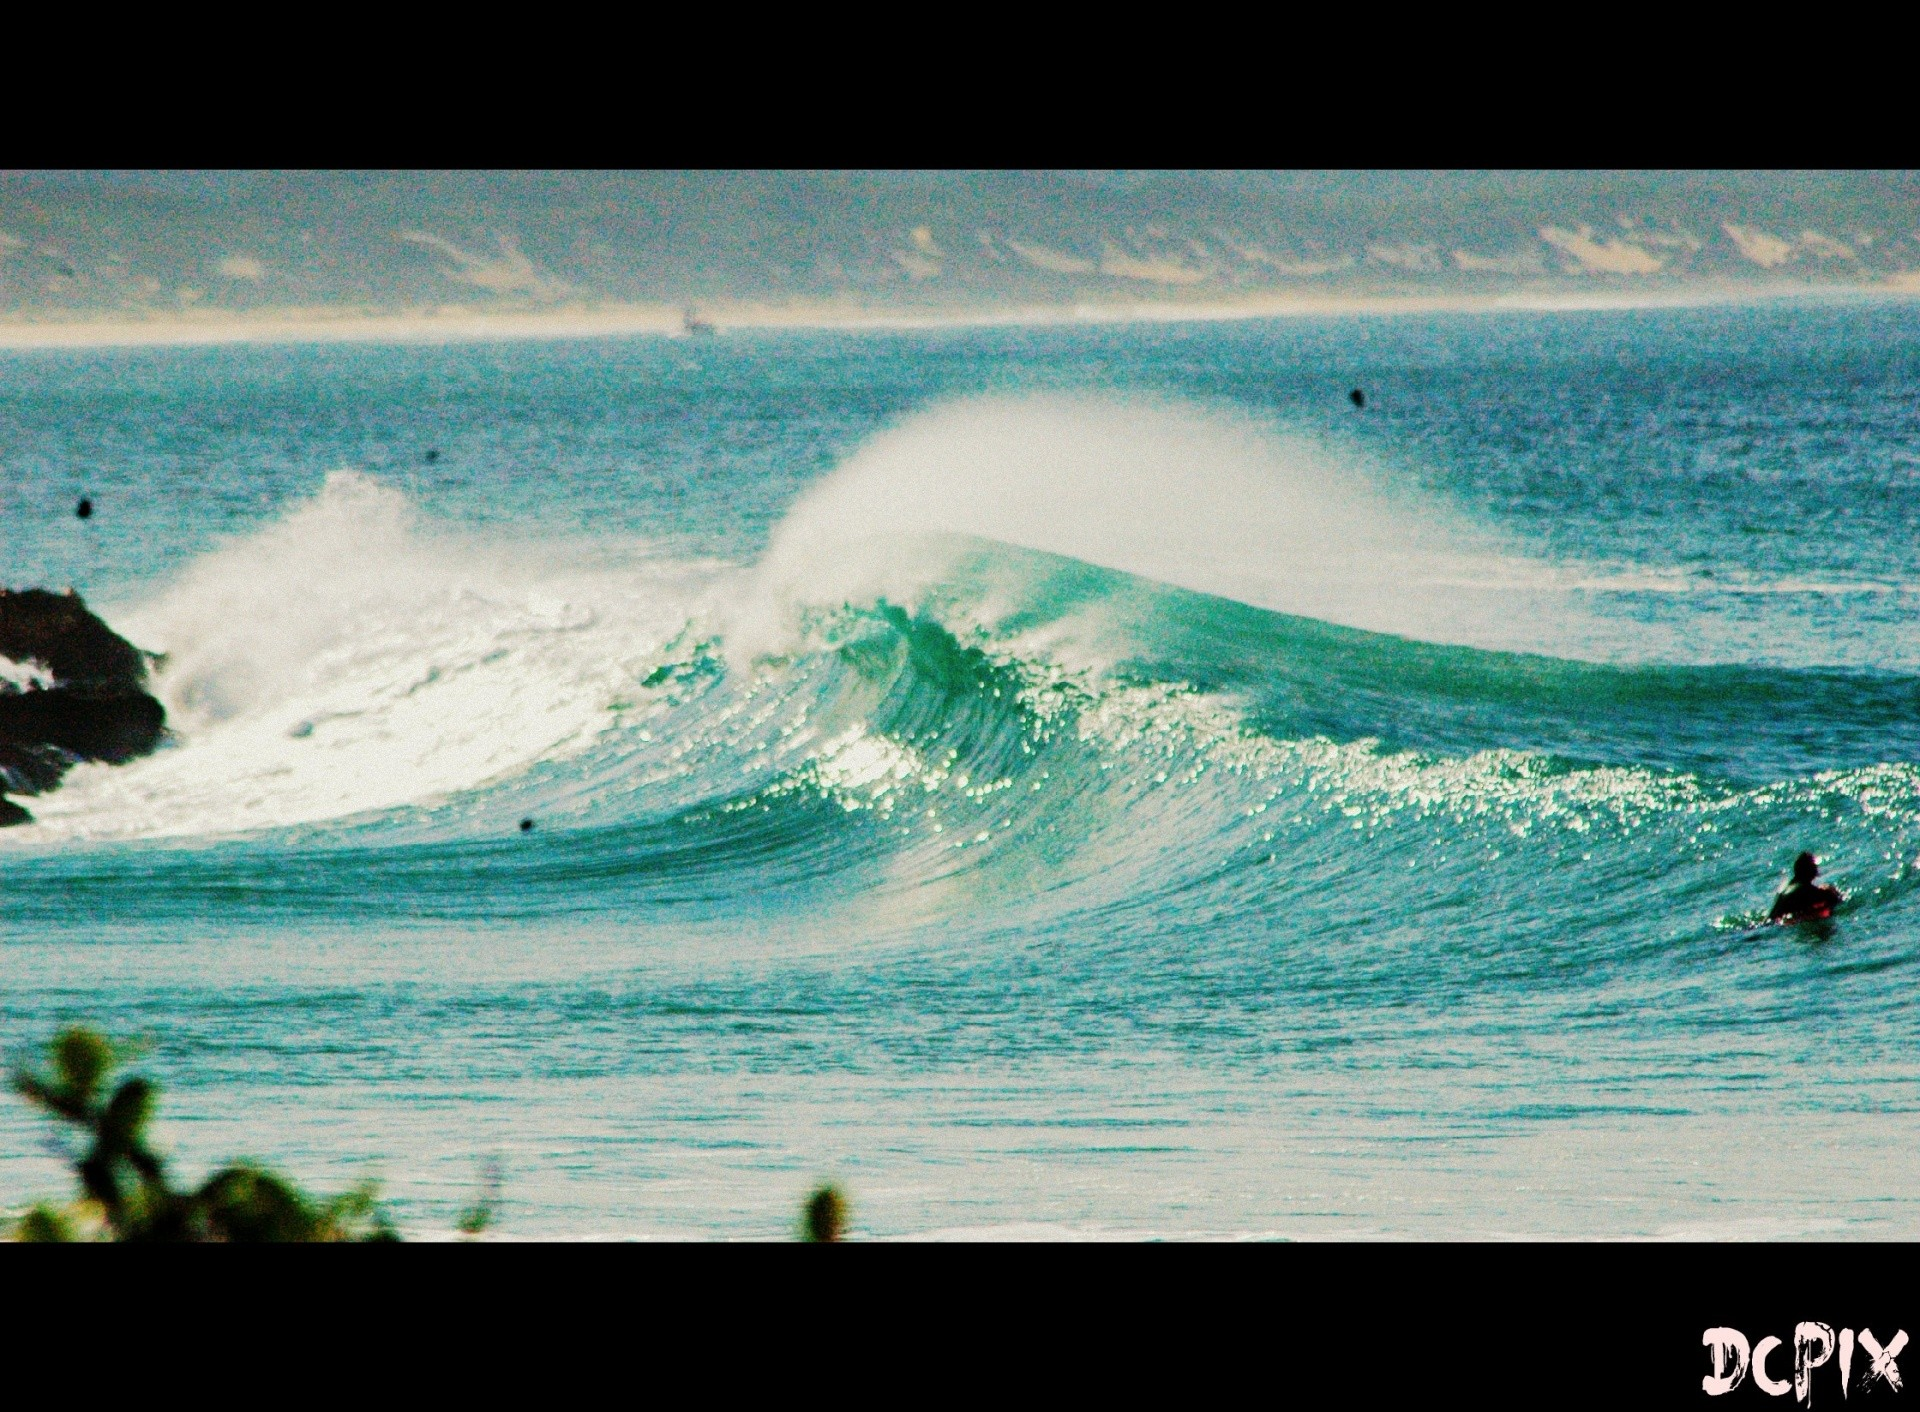 Dave Camacho's photo of The Wedge